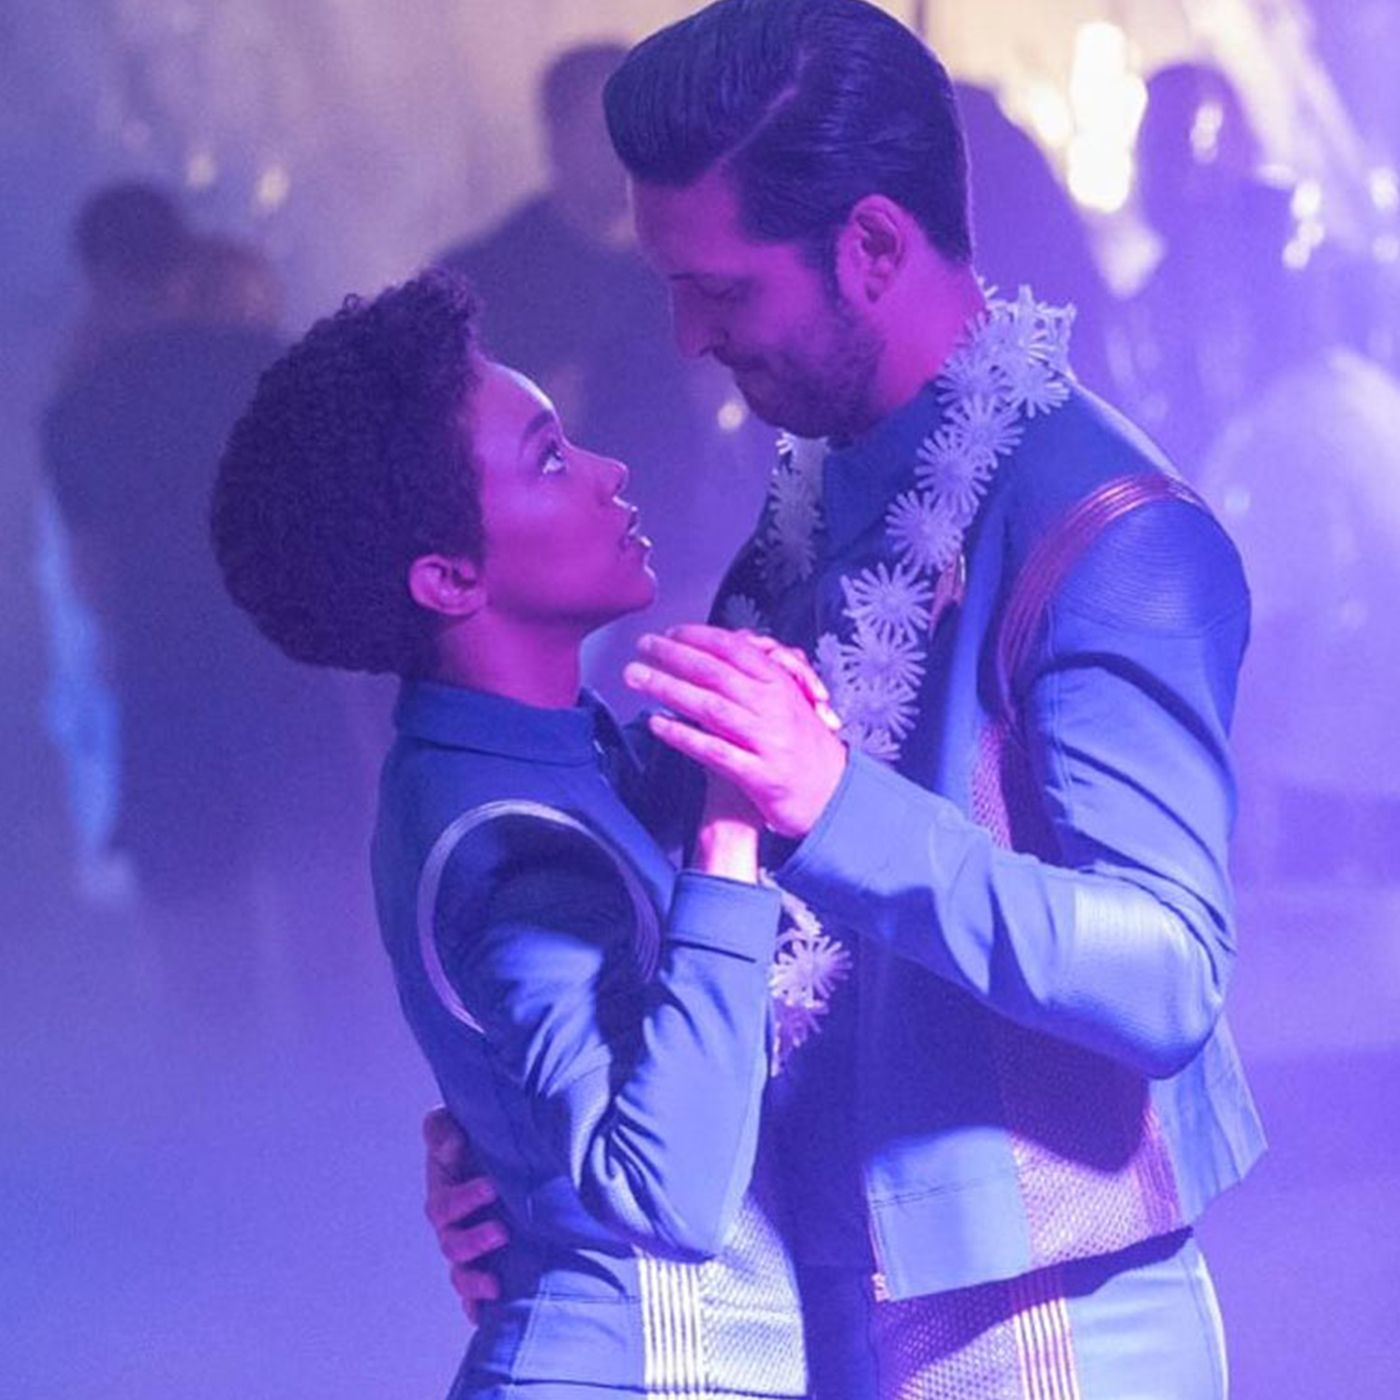 25. Star Trek: Discovery 1x07 - Magic to Make the Sanest Man Go Mad